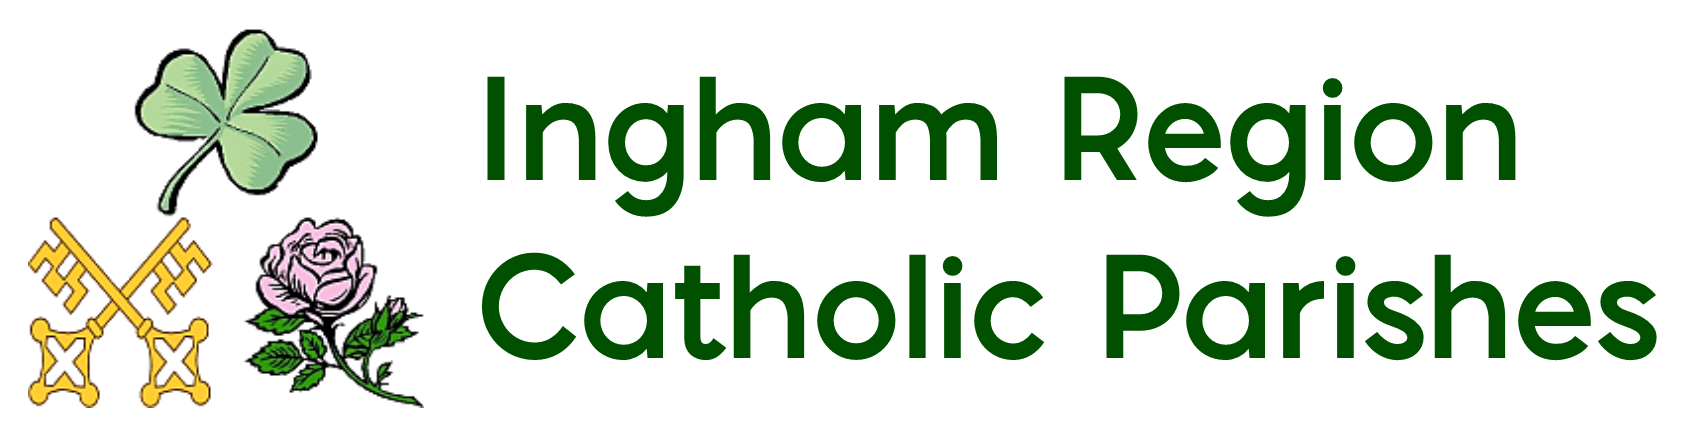 Ingham Region Catholic Parishes